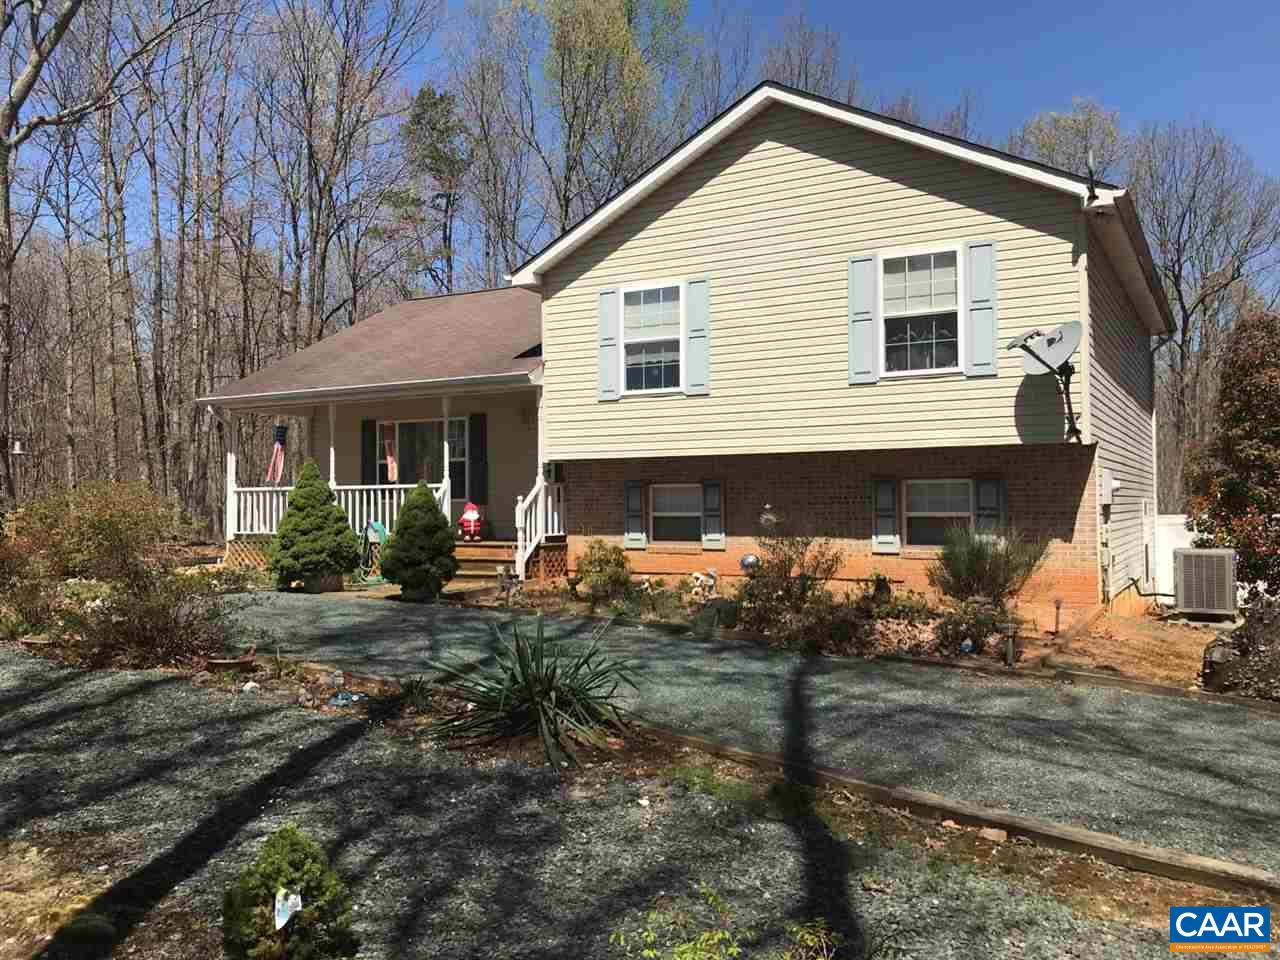 home for sale , MLS #575203, 1373 Long Acre Rd